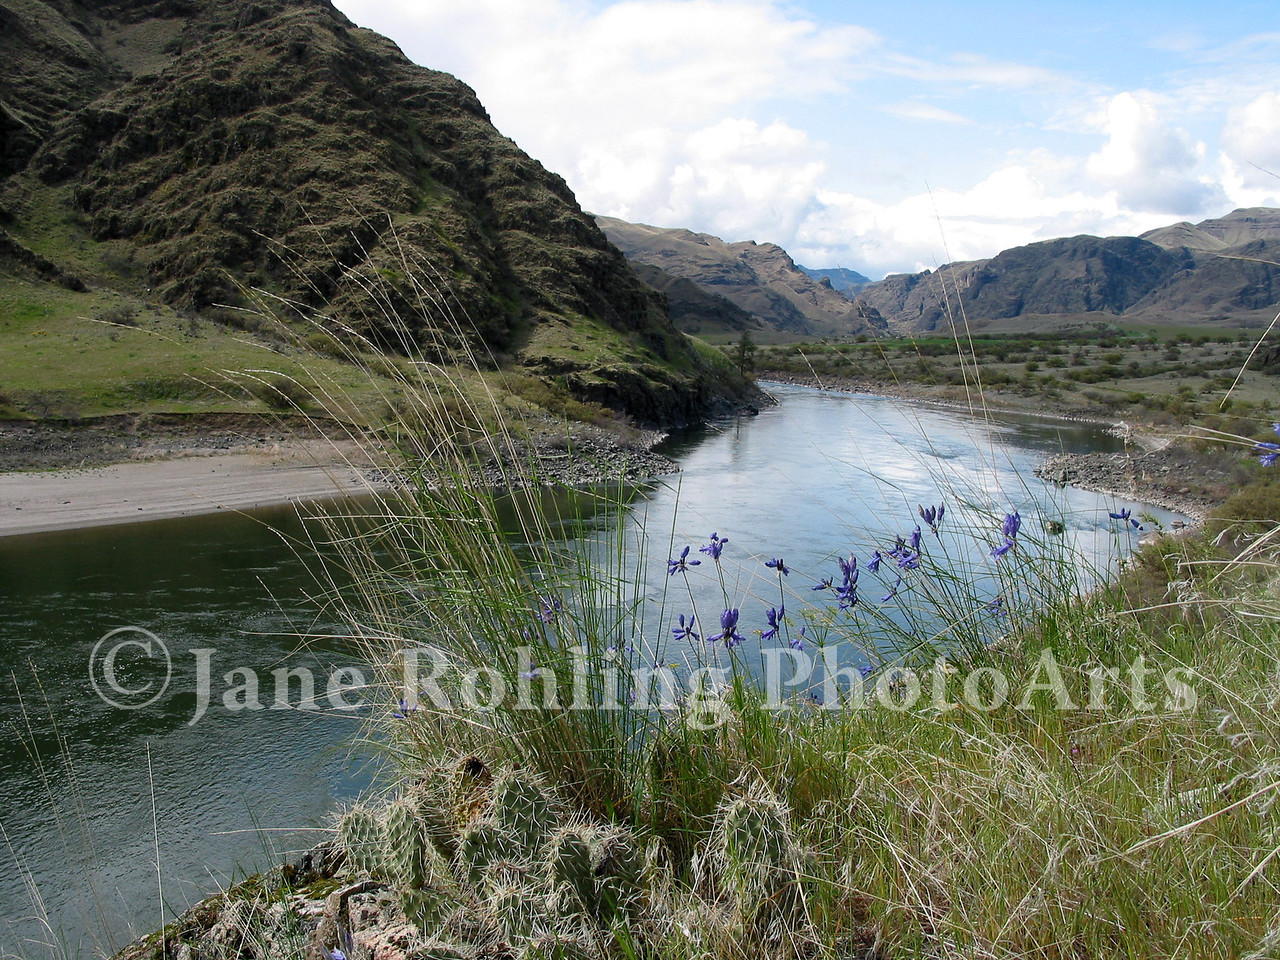 The Snake River winding downriver towards Pittsburg Landing on the Snake River in Hells Canyon National Recreation Area. (Oregon on the left, Idaho on the right)